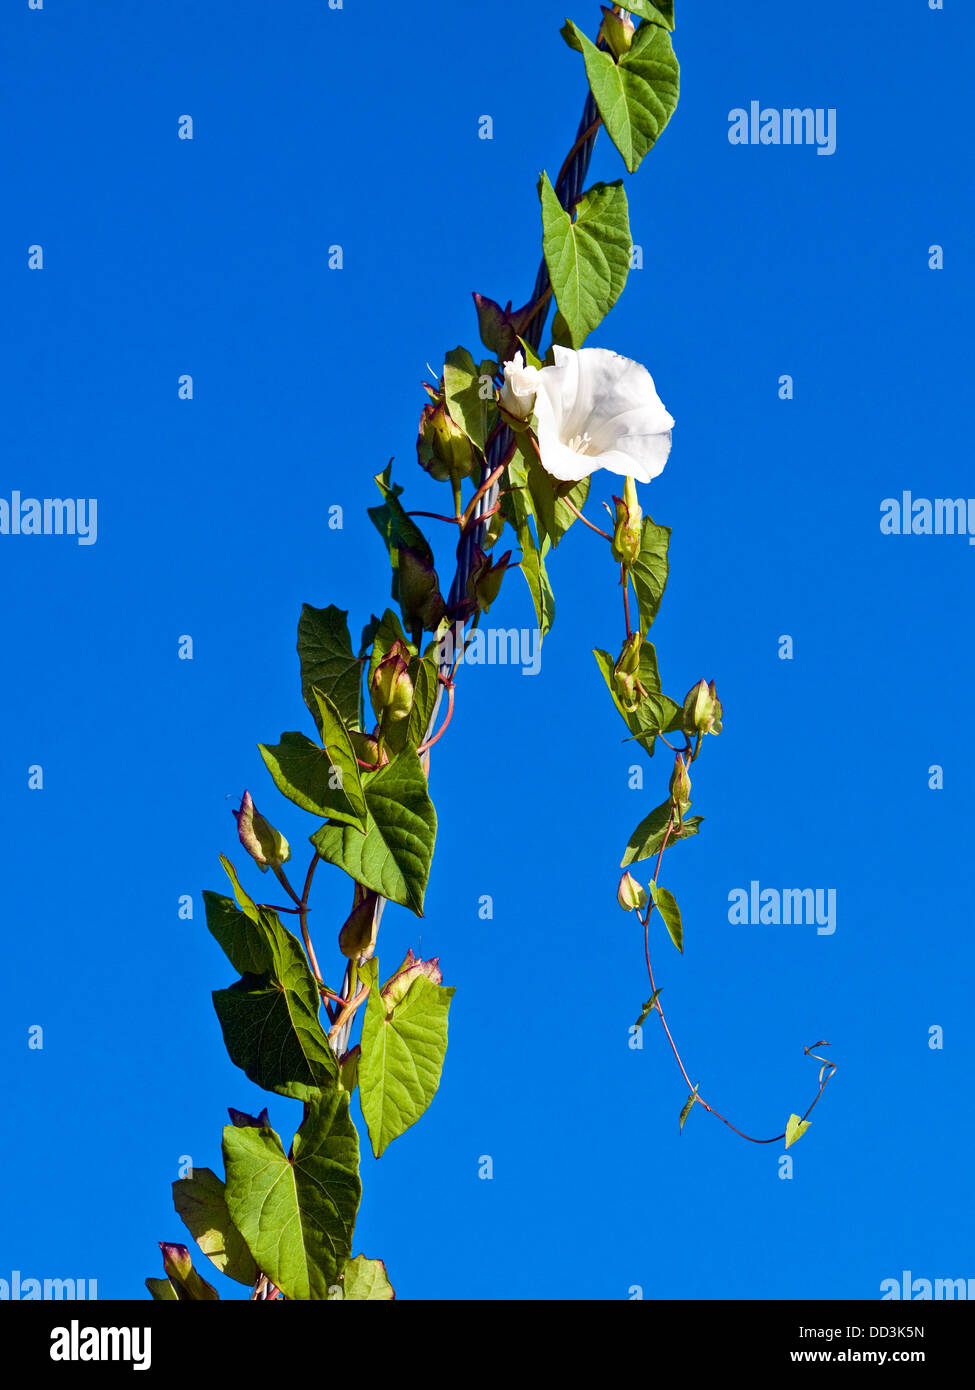 Field Bindweed / Convolvolus arvensis weed climbing steel cable - France. - Stock Image